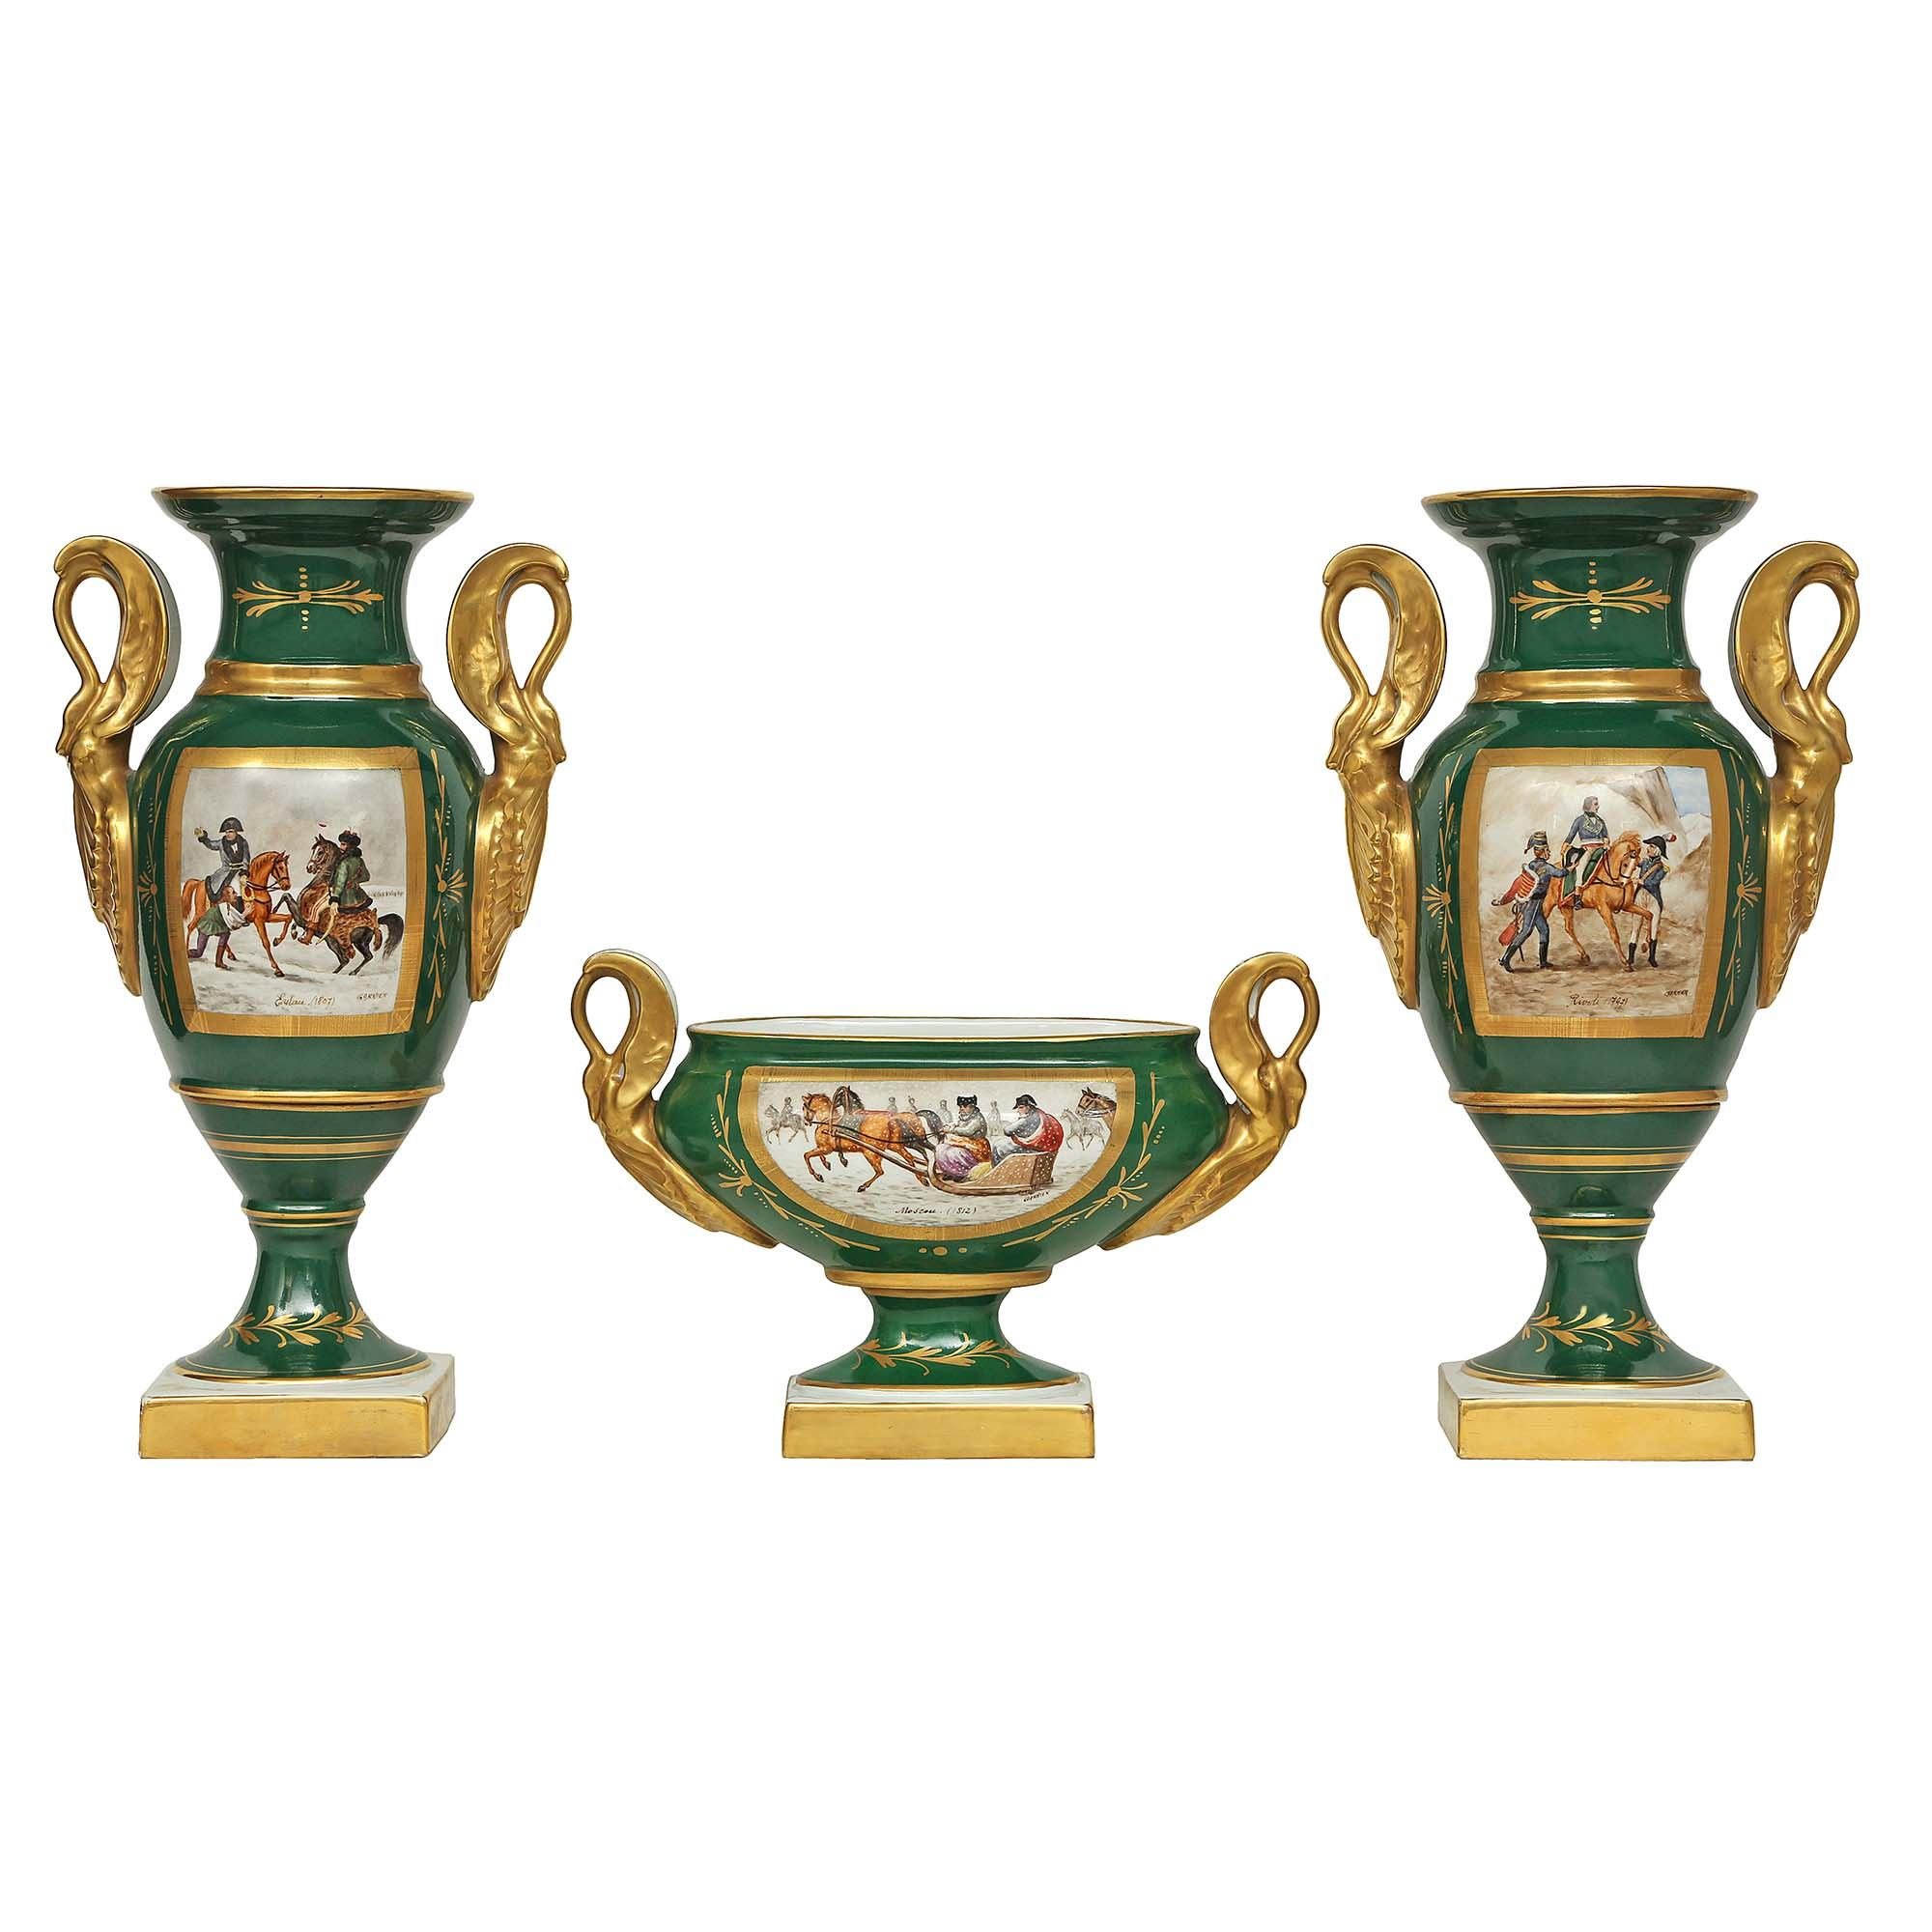 A French 19th century Empire st  three piece porcelain from Limoges, France